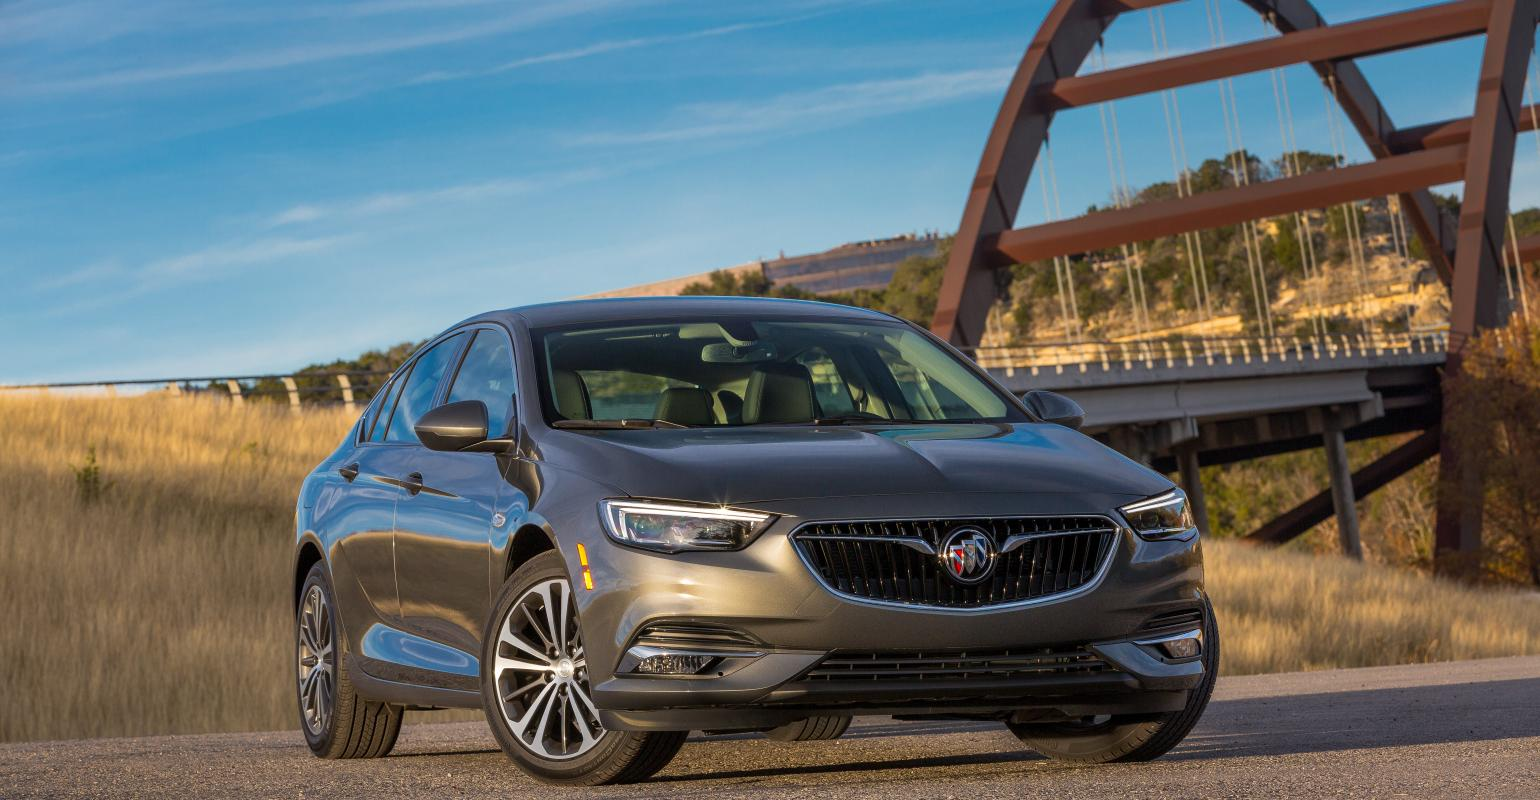 Buick Regal: Additional Factors Affecting System Operation